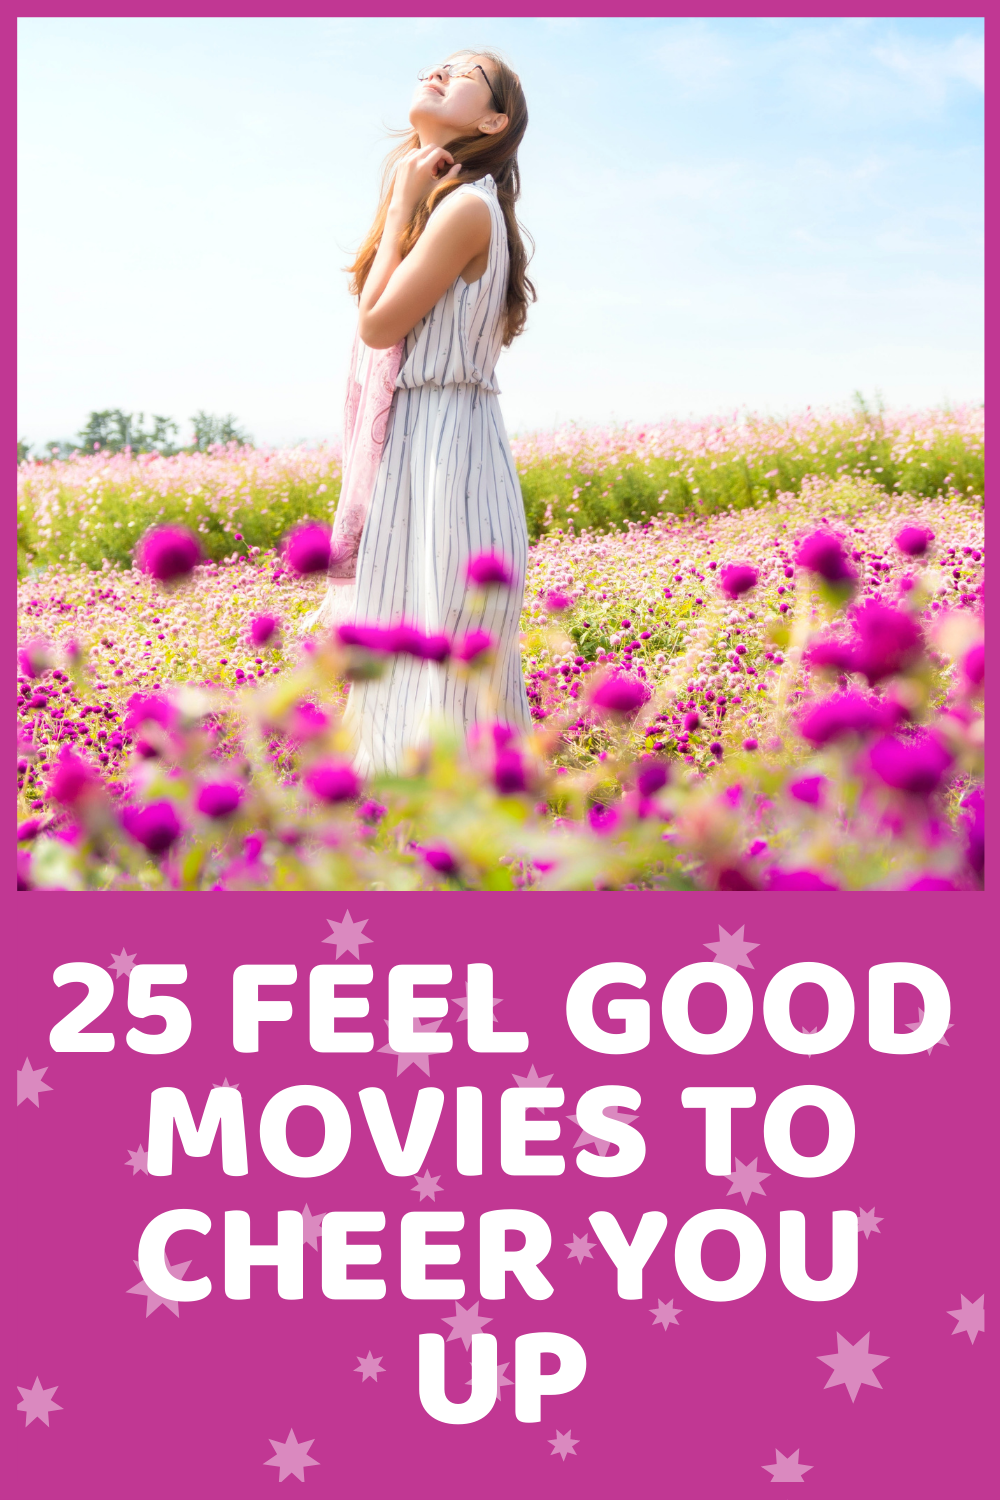 25 Feel Good Movies To Cheer You Up